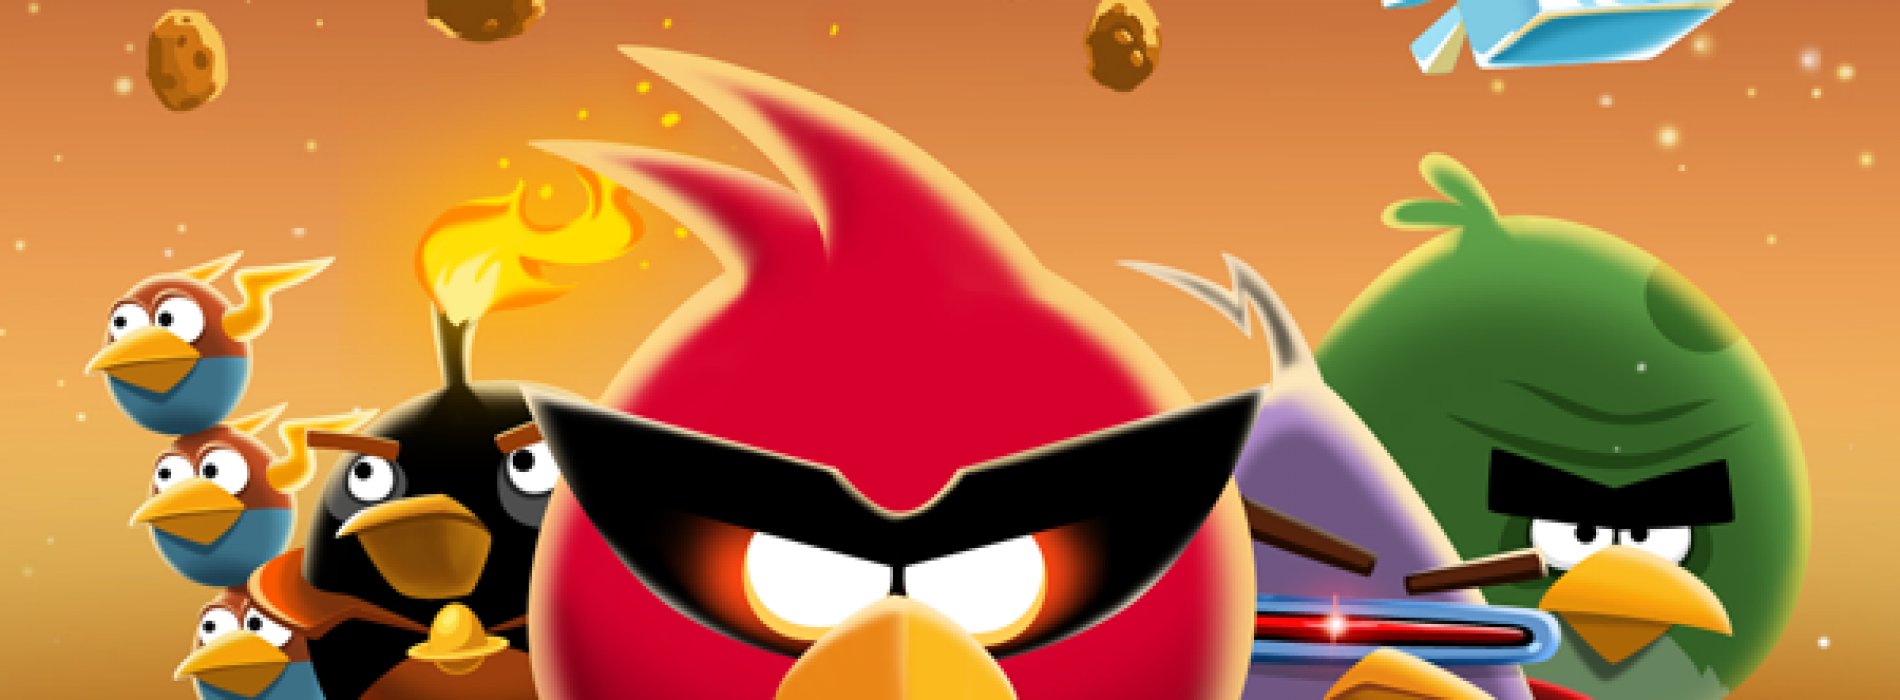 Angry Birds Space 'Cosmic Crystals' update adds 35 new levels